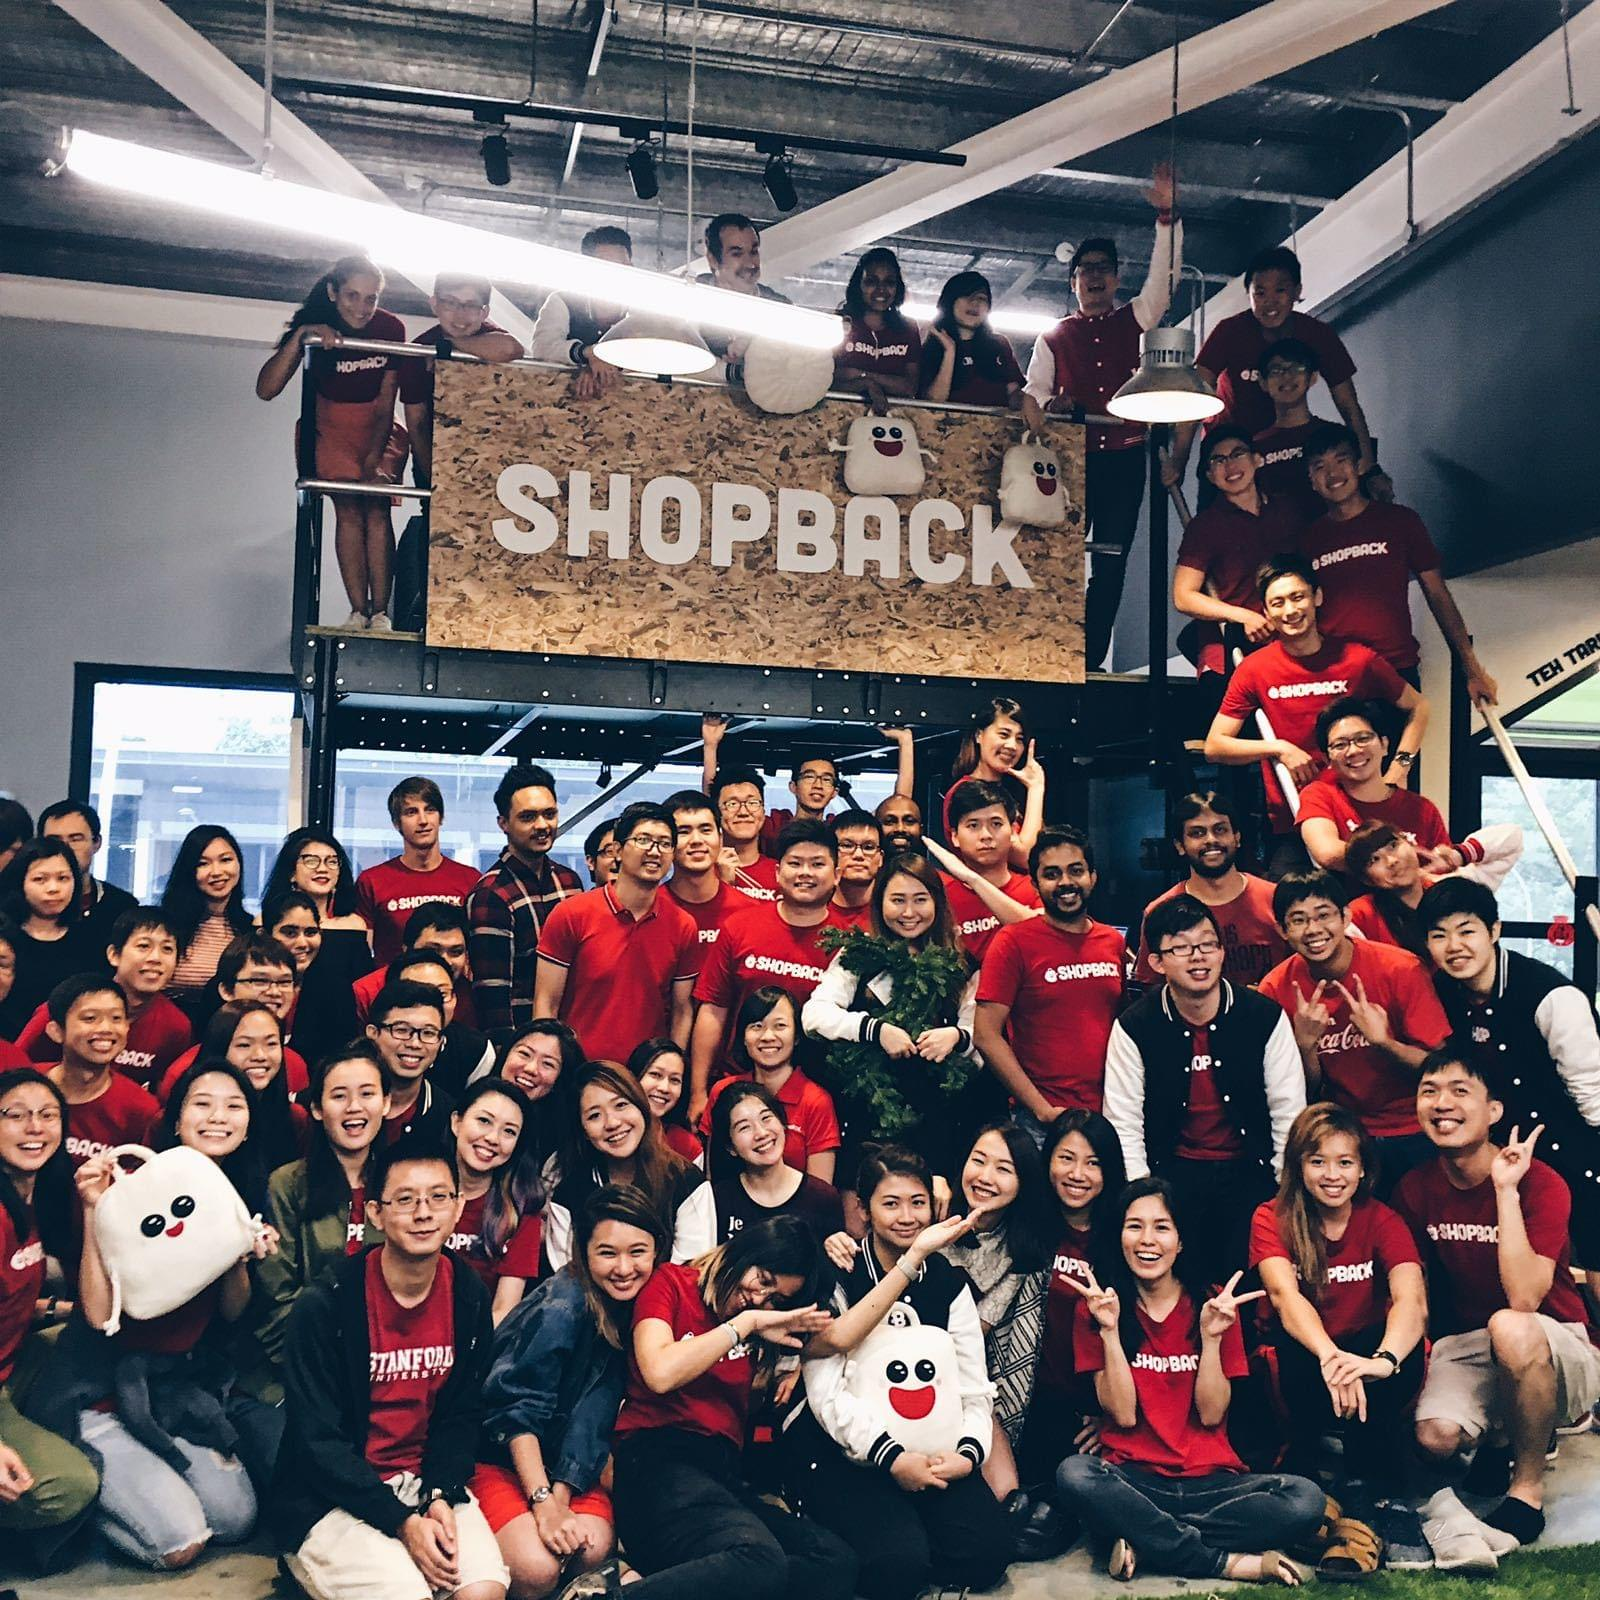 LifeAtShopBack - Find jobs, build careers  ShopBack - The